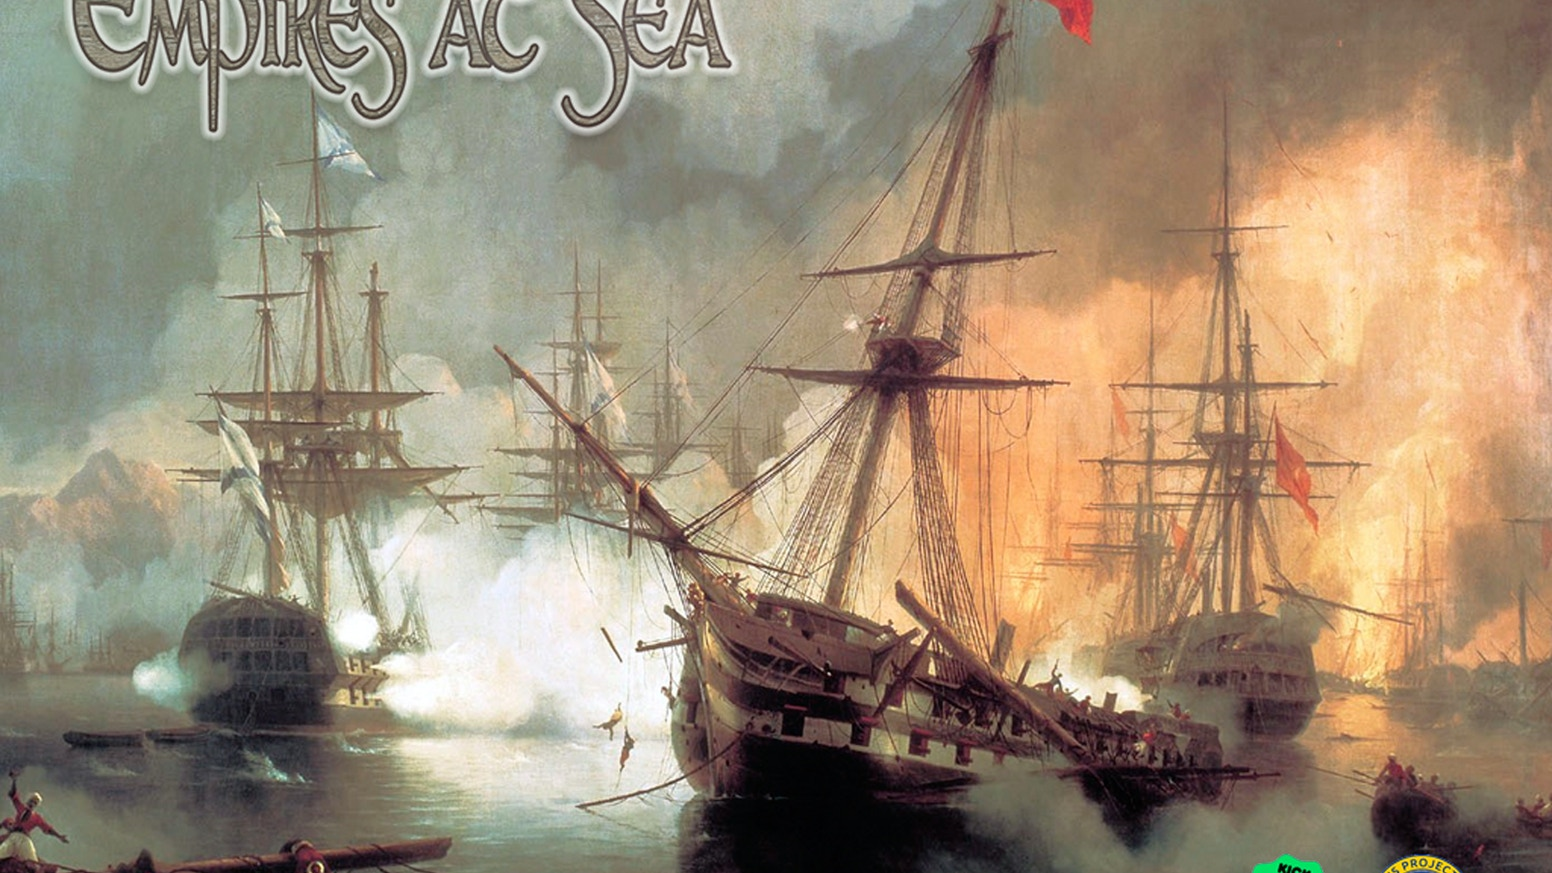 Empires at Sea: An Epic duel across the Seven Seas. A game of trade, exploration, and war. And pirates. Don't forget about pirates.